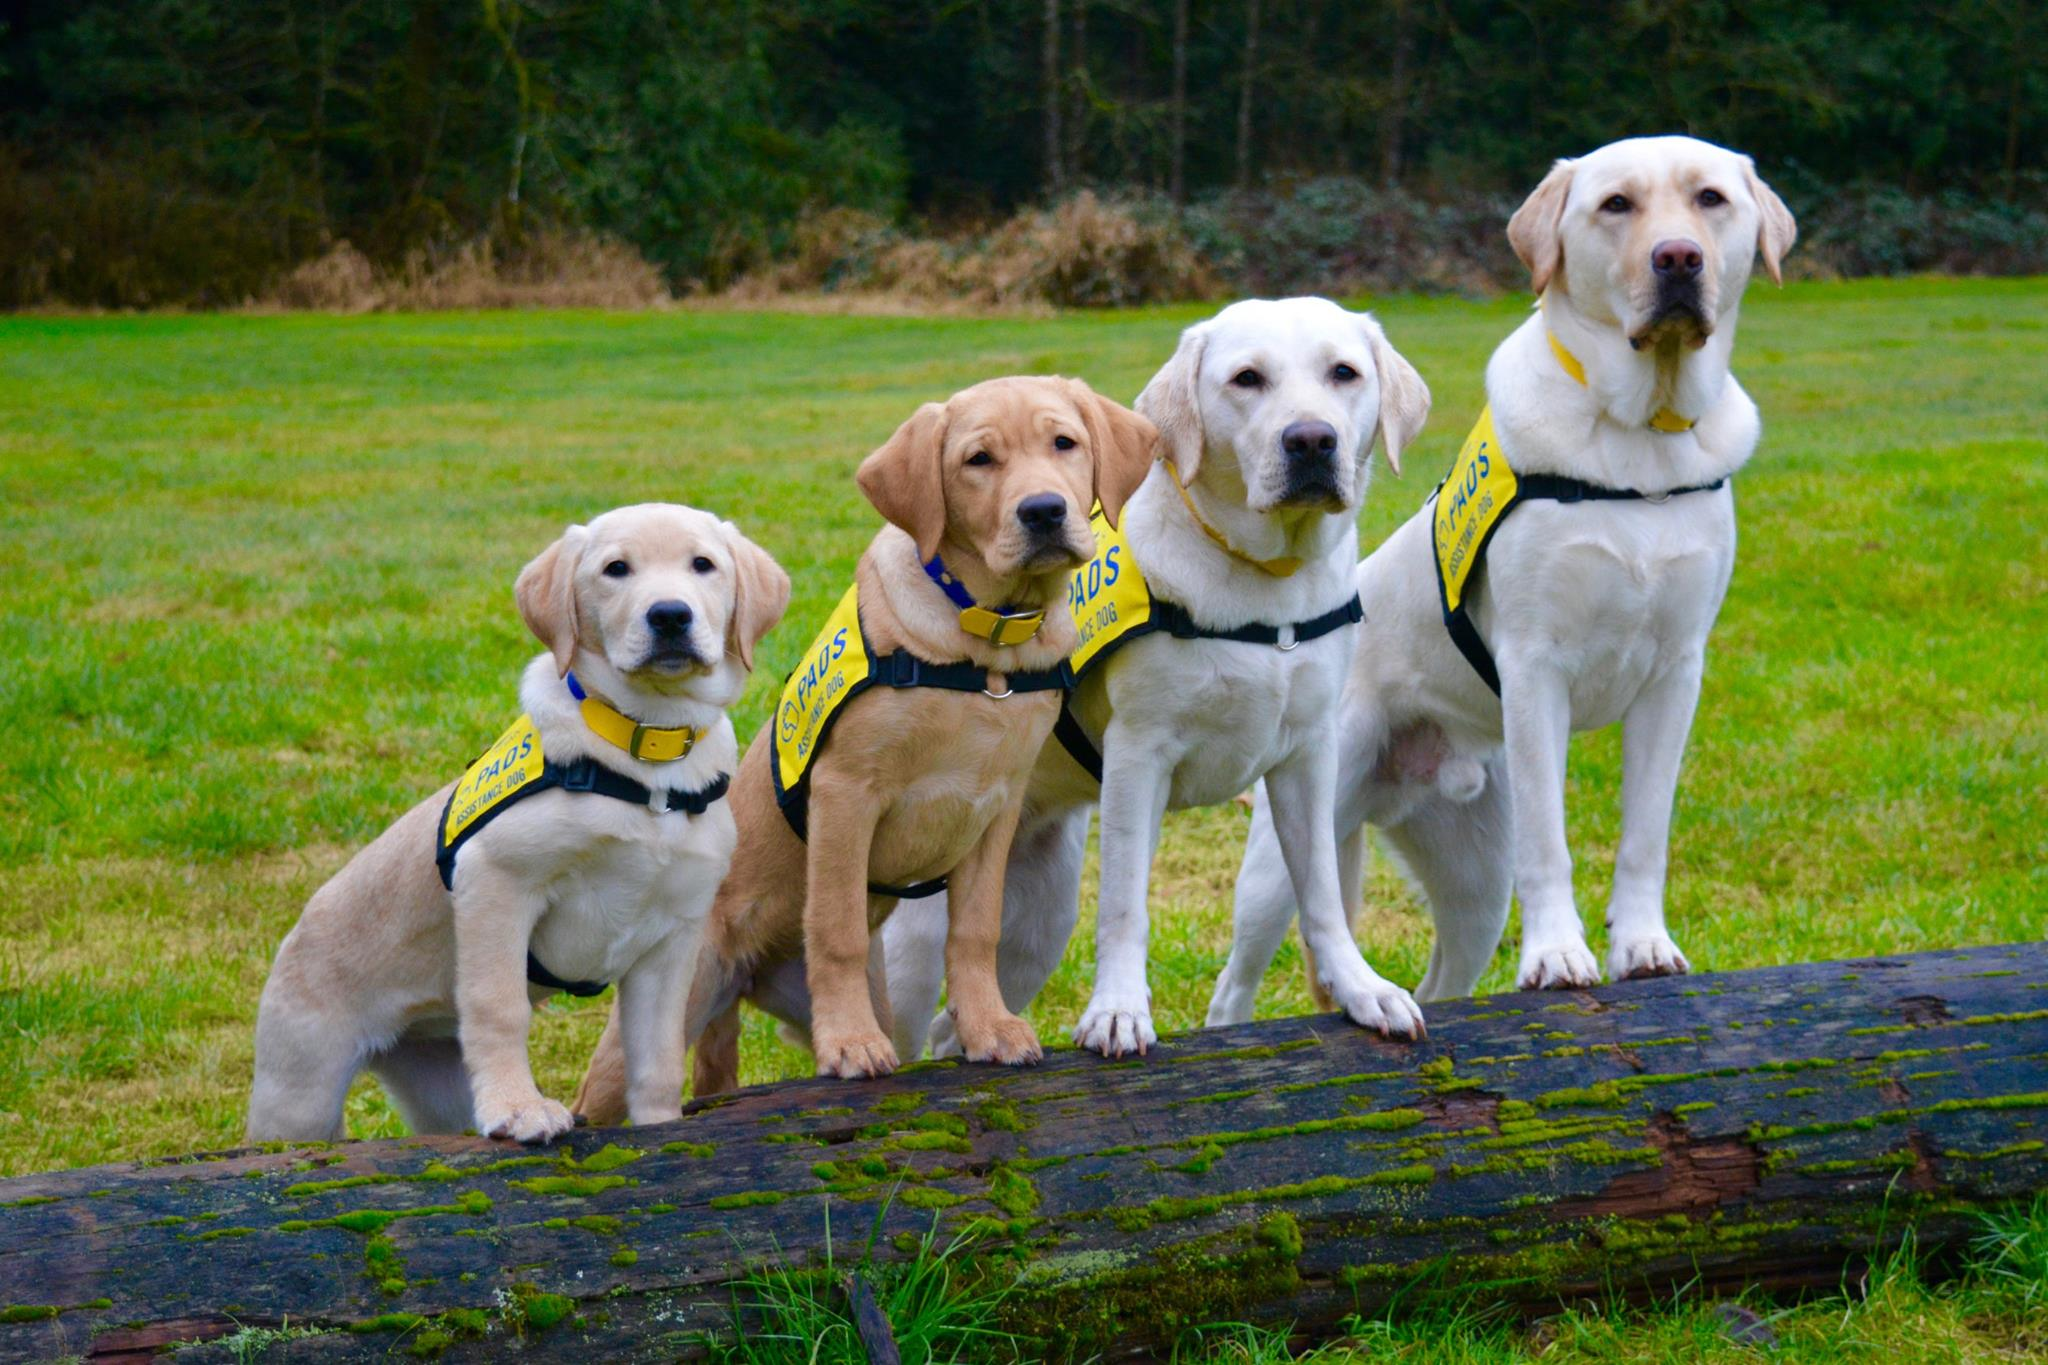 Welcome to PADS - The Pacific Assistance Dogs Society